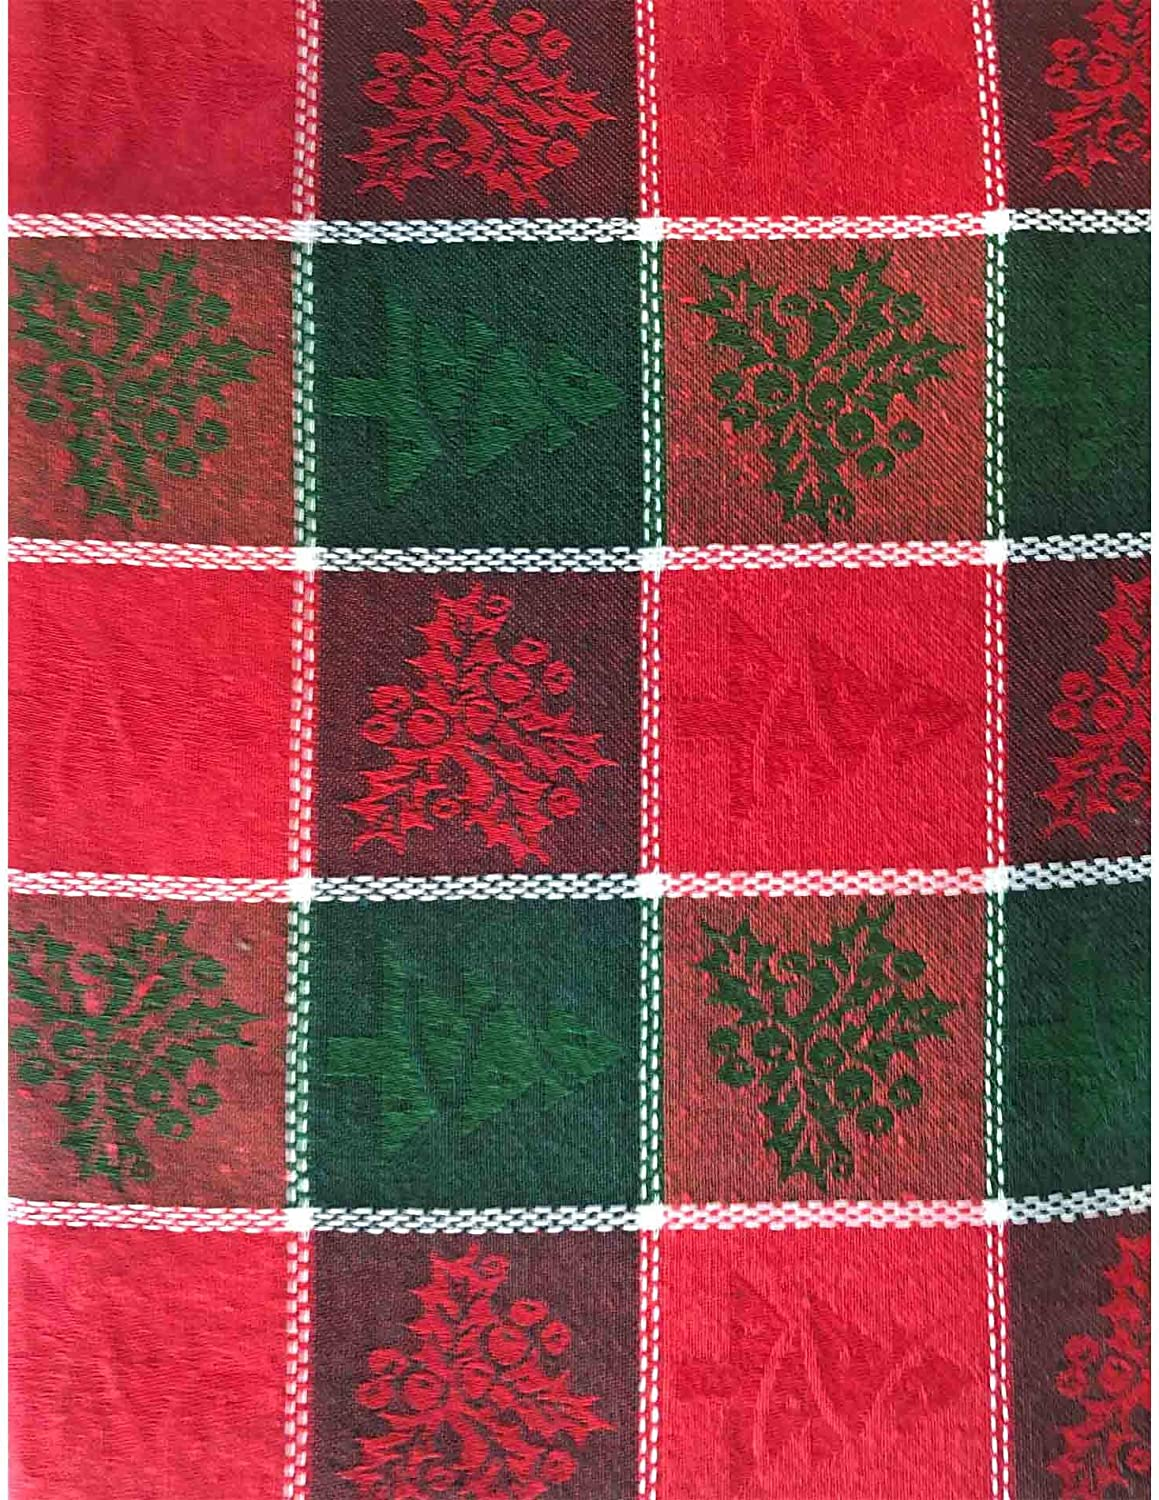 Lintex Christmas Holly Patchwork Cotton Fabric Napkins Set of 4 Napkins Red and Green Holly Grid Jacquard Jacquard 100/% Cotton Weave Kitchen and Dining Room Napkins